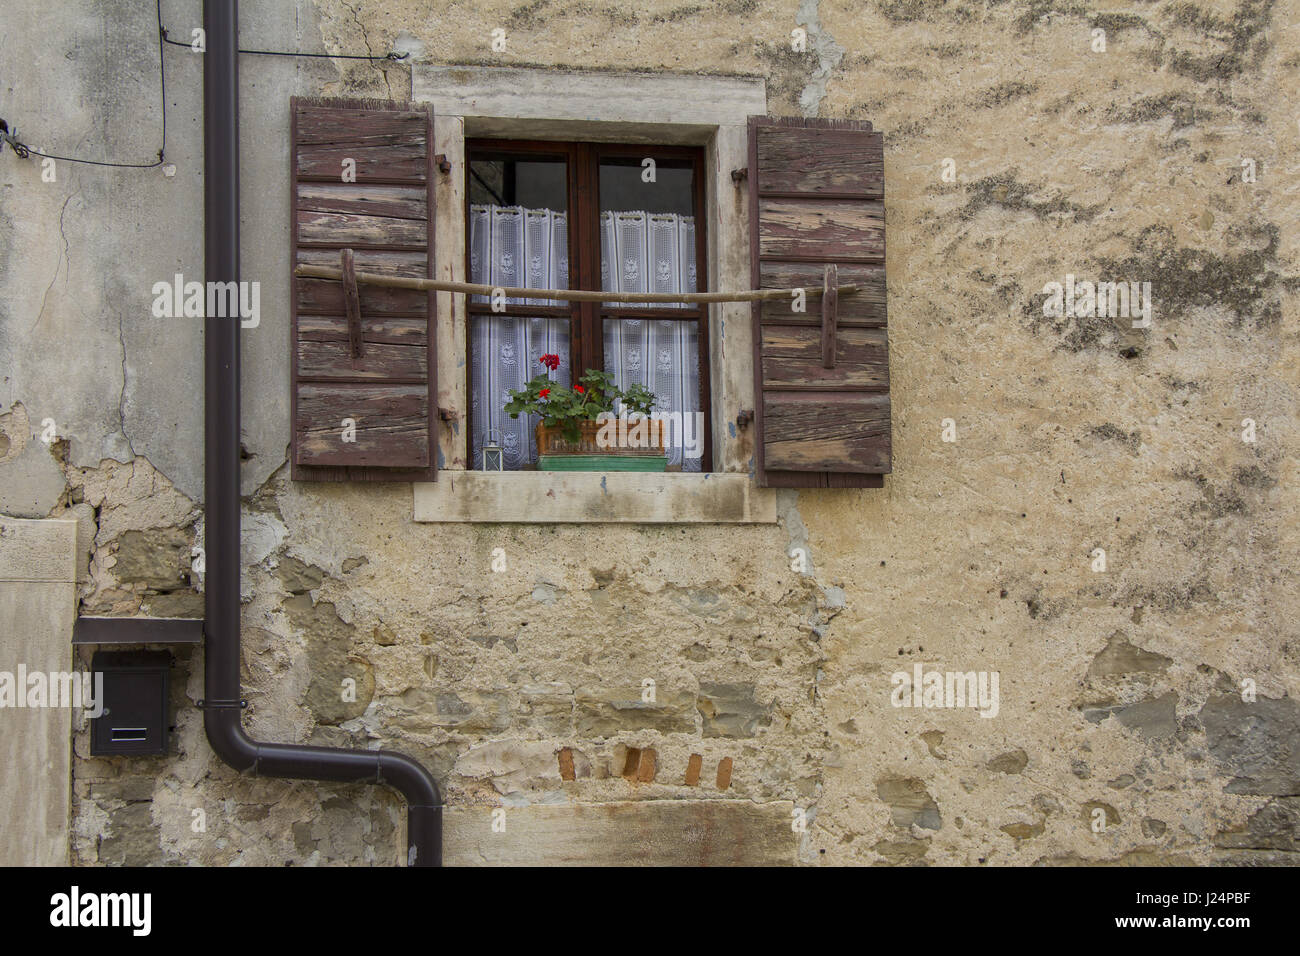 rustic old wooden shutters stockfotos rustic old wooden shutters bilder alamy. Black Bedroom Furniture Sets. Home Design Ideas